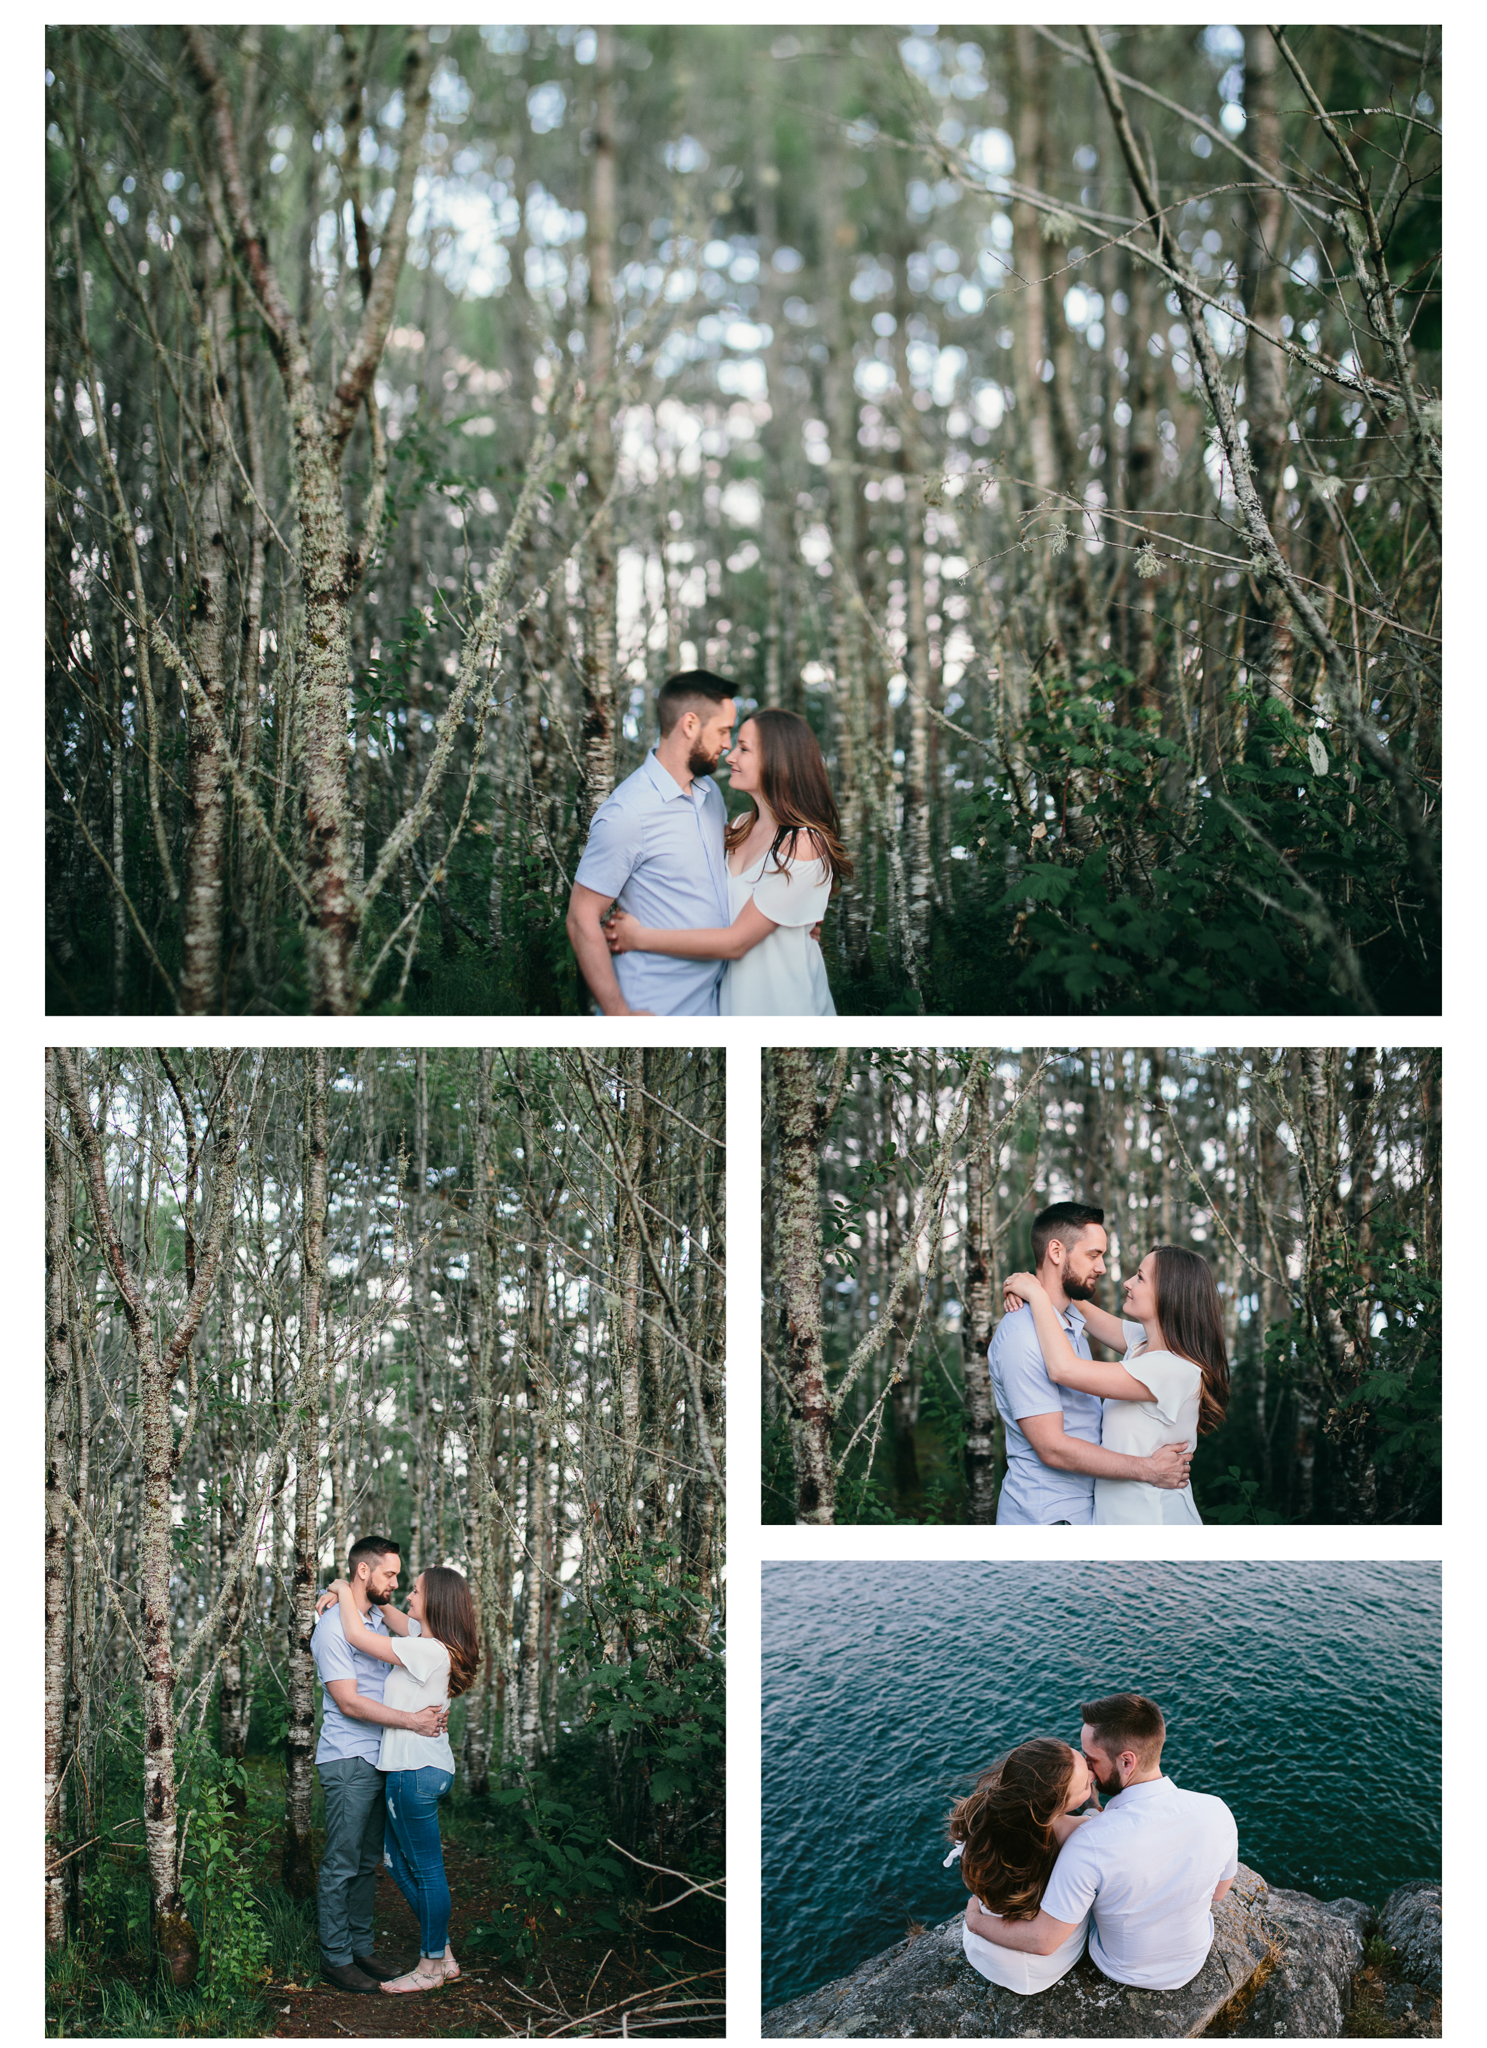 claire-eric-engagement-8.jpg